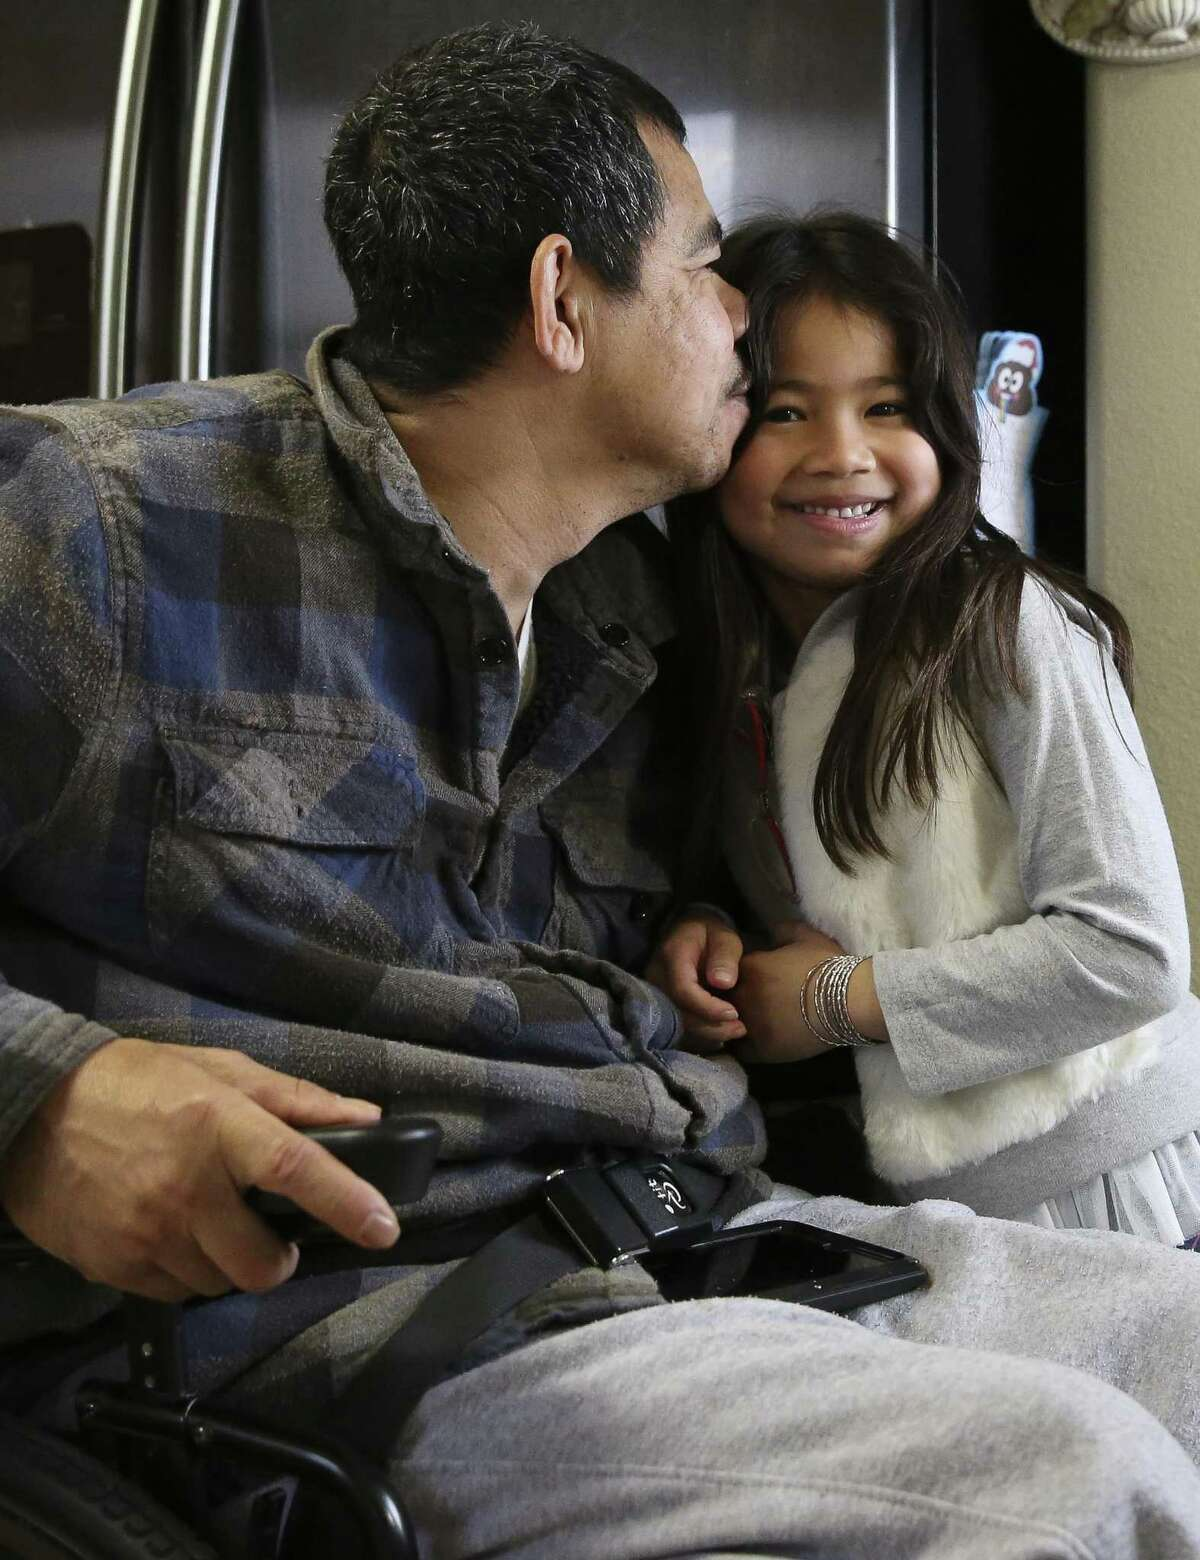 Khanh Hung Le, 47, kisses his daughter, Tonya, 7, when she comes home after school. Le has raised his daughter since she was 7 months old after he separated from his ex-wife.